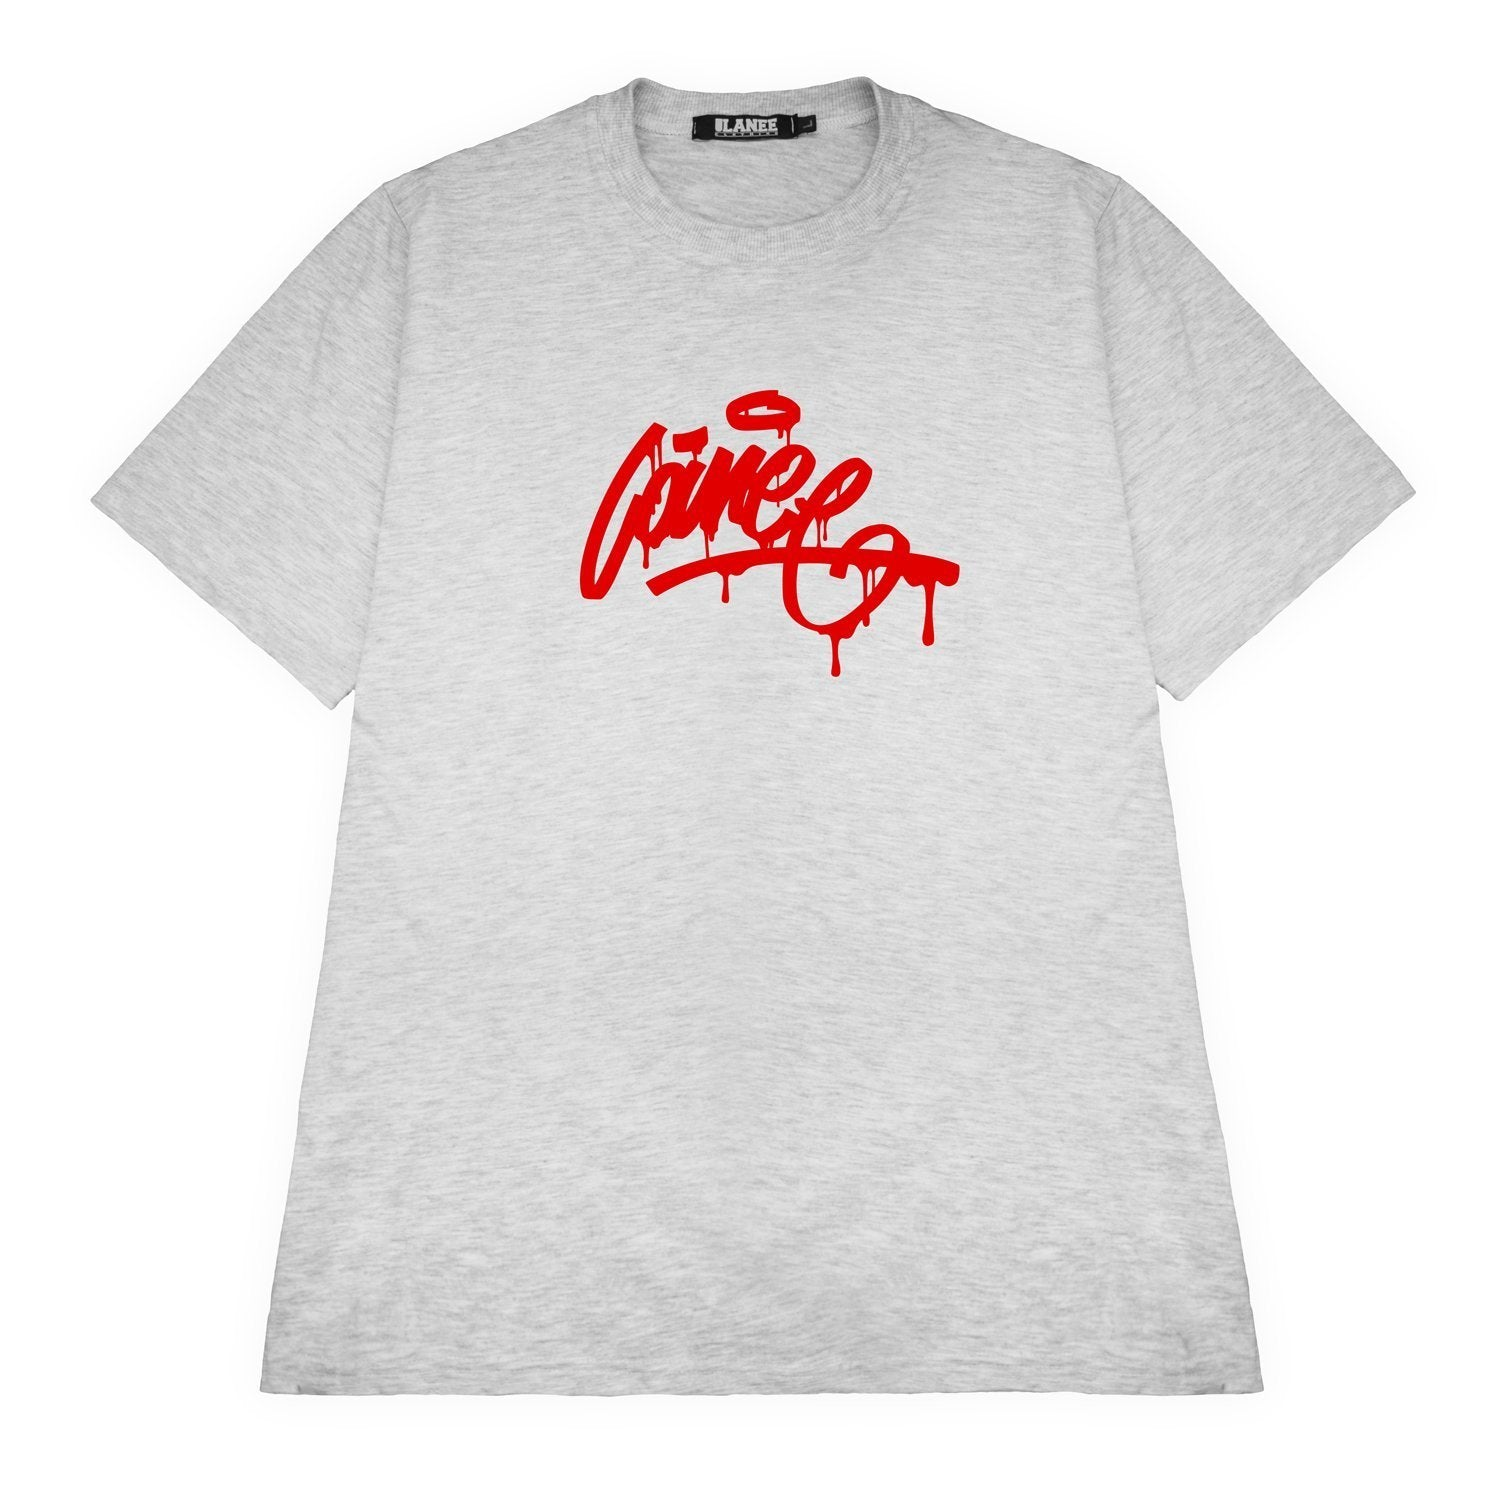 T-SHIRT - BLOODY GREY TEE